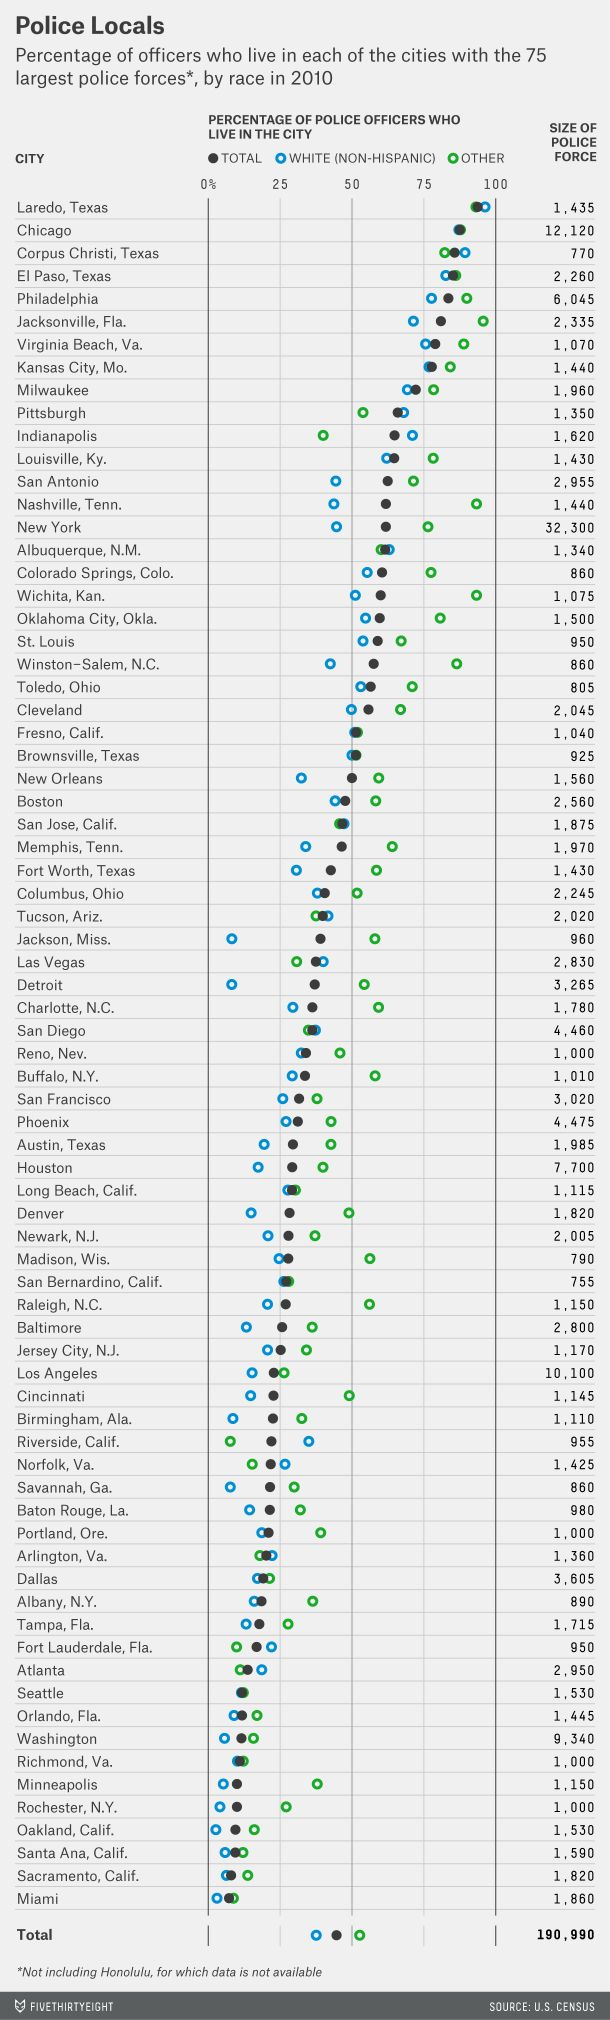 Most Police Don't Live In The Cities They Serve